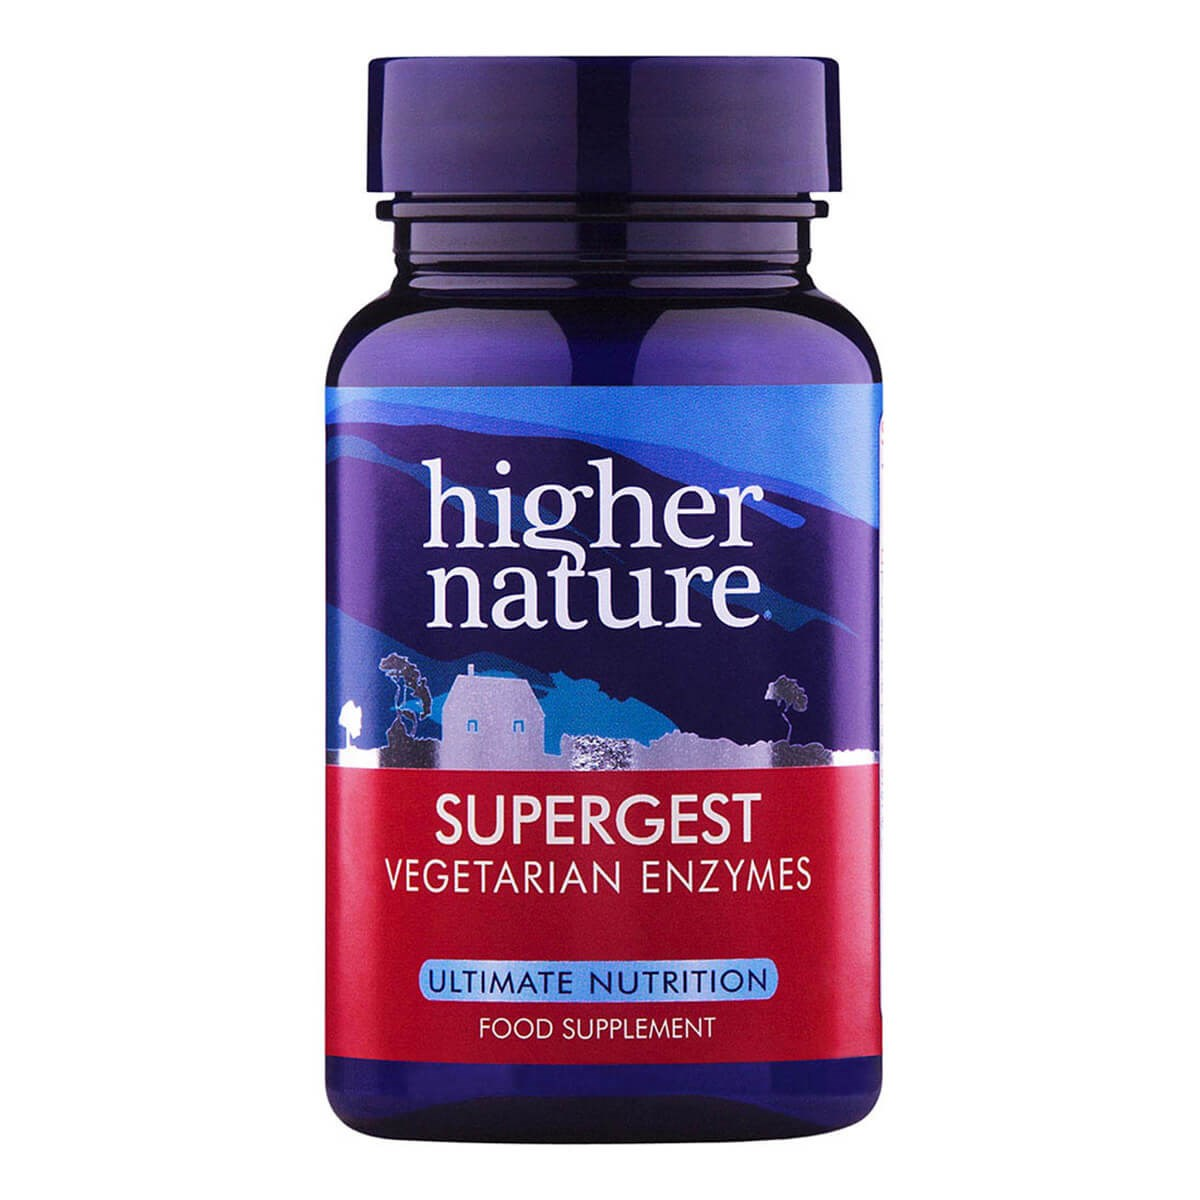 Higher Nature Supergest